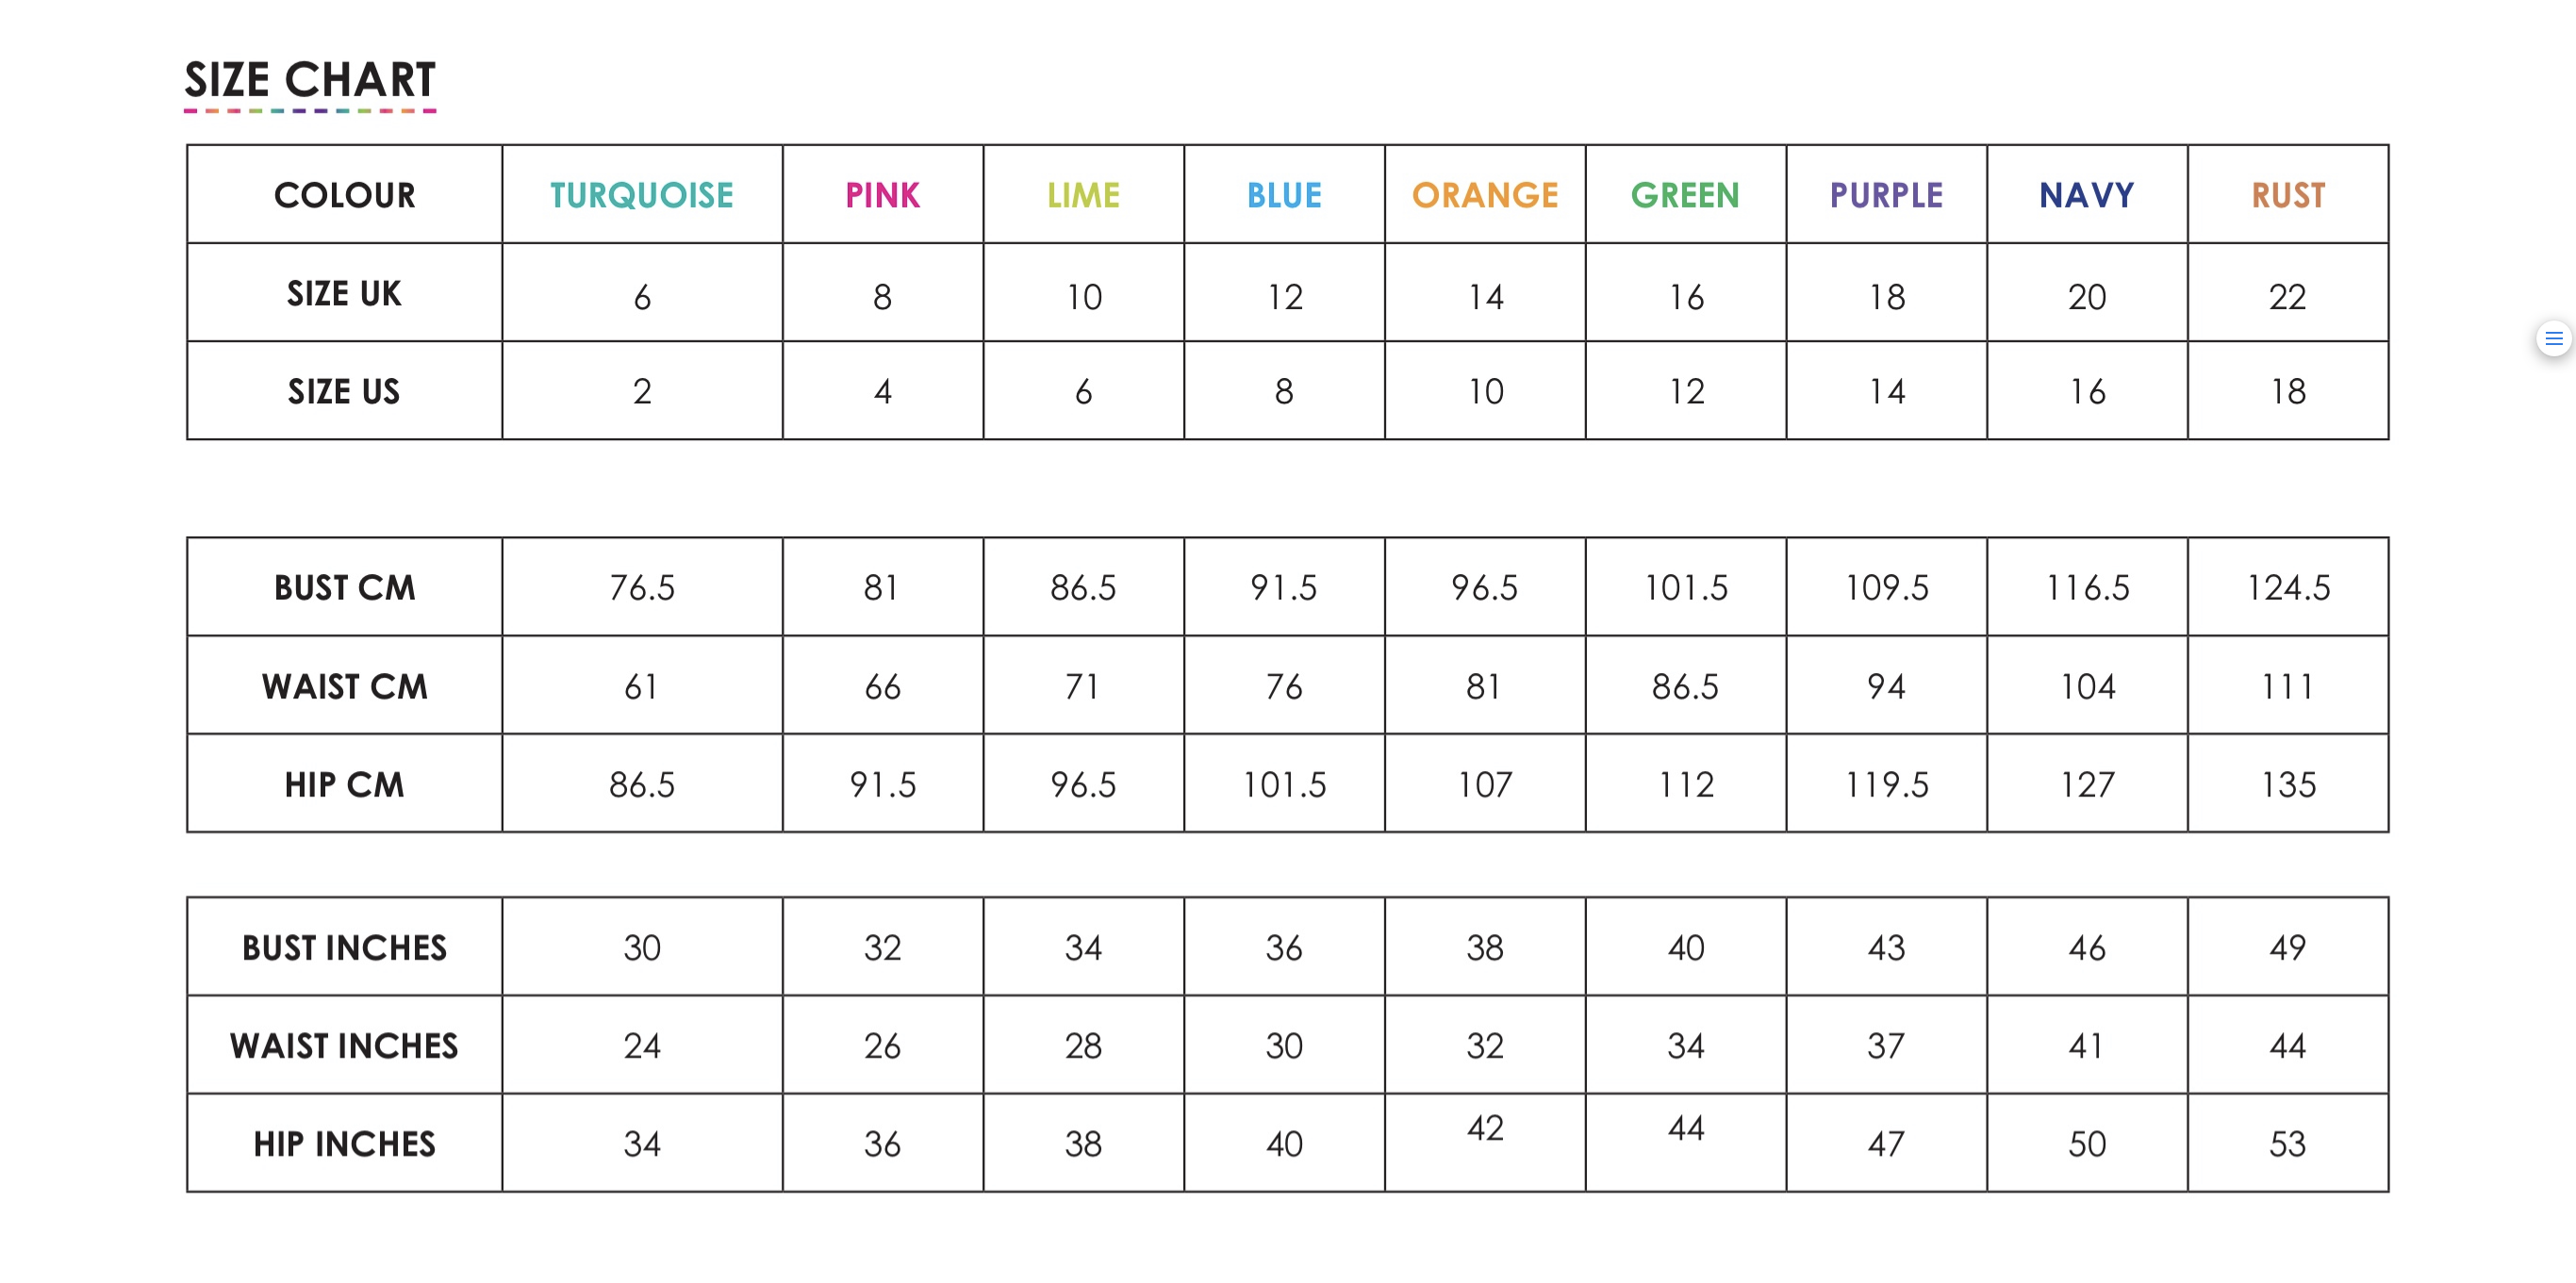 6-22-size-chart.png